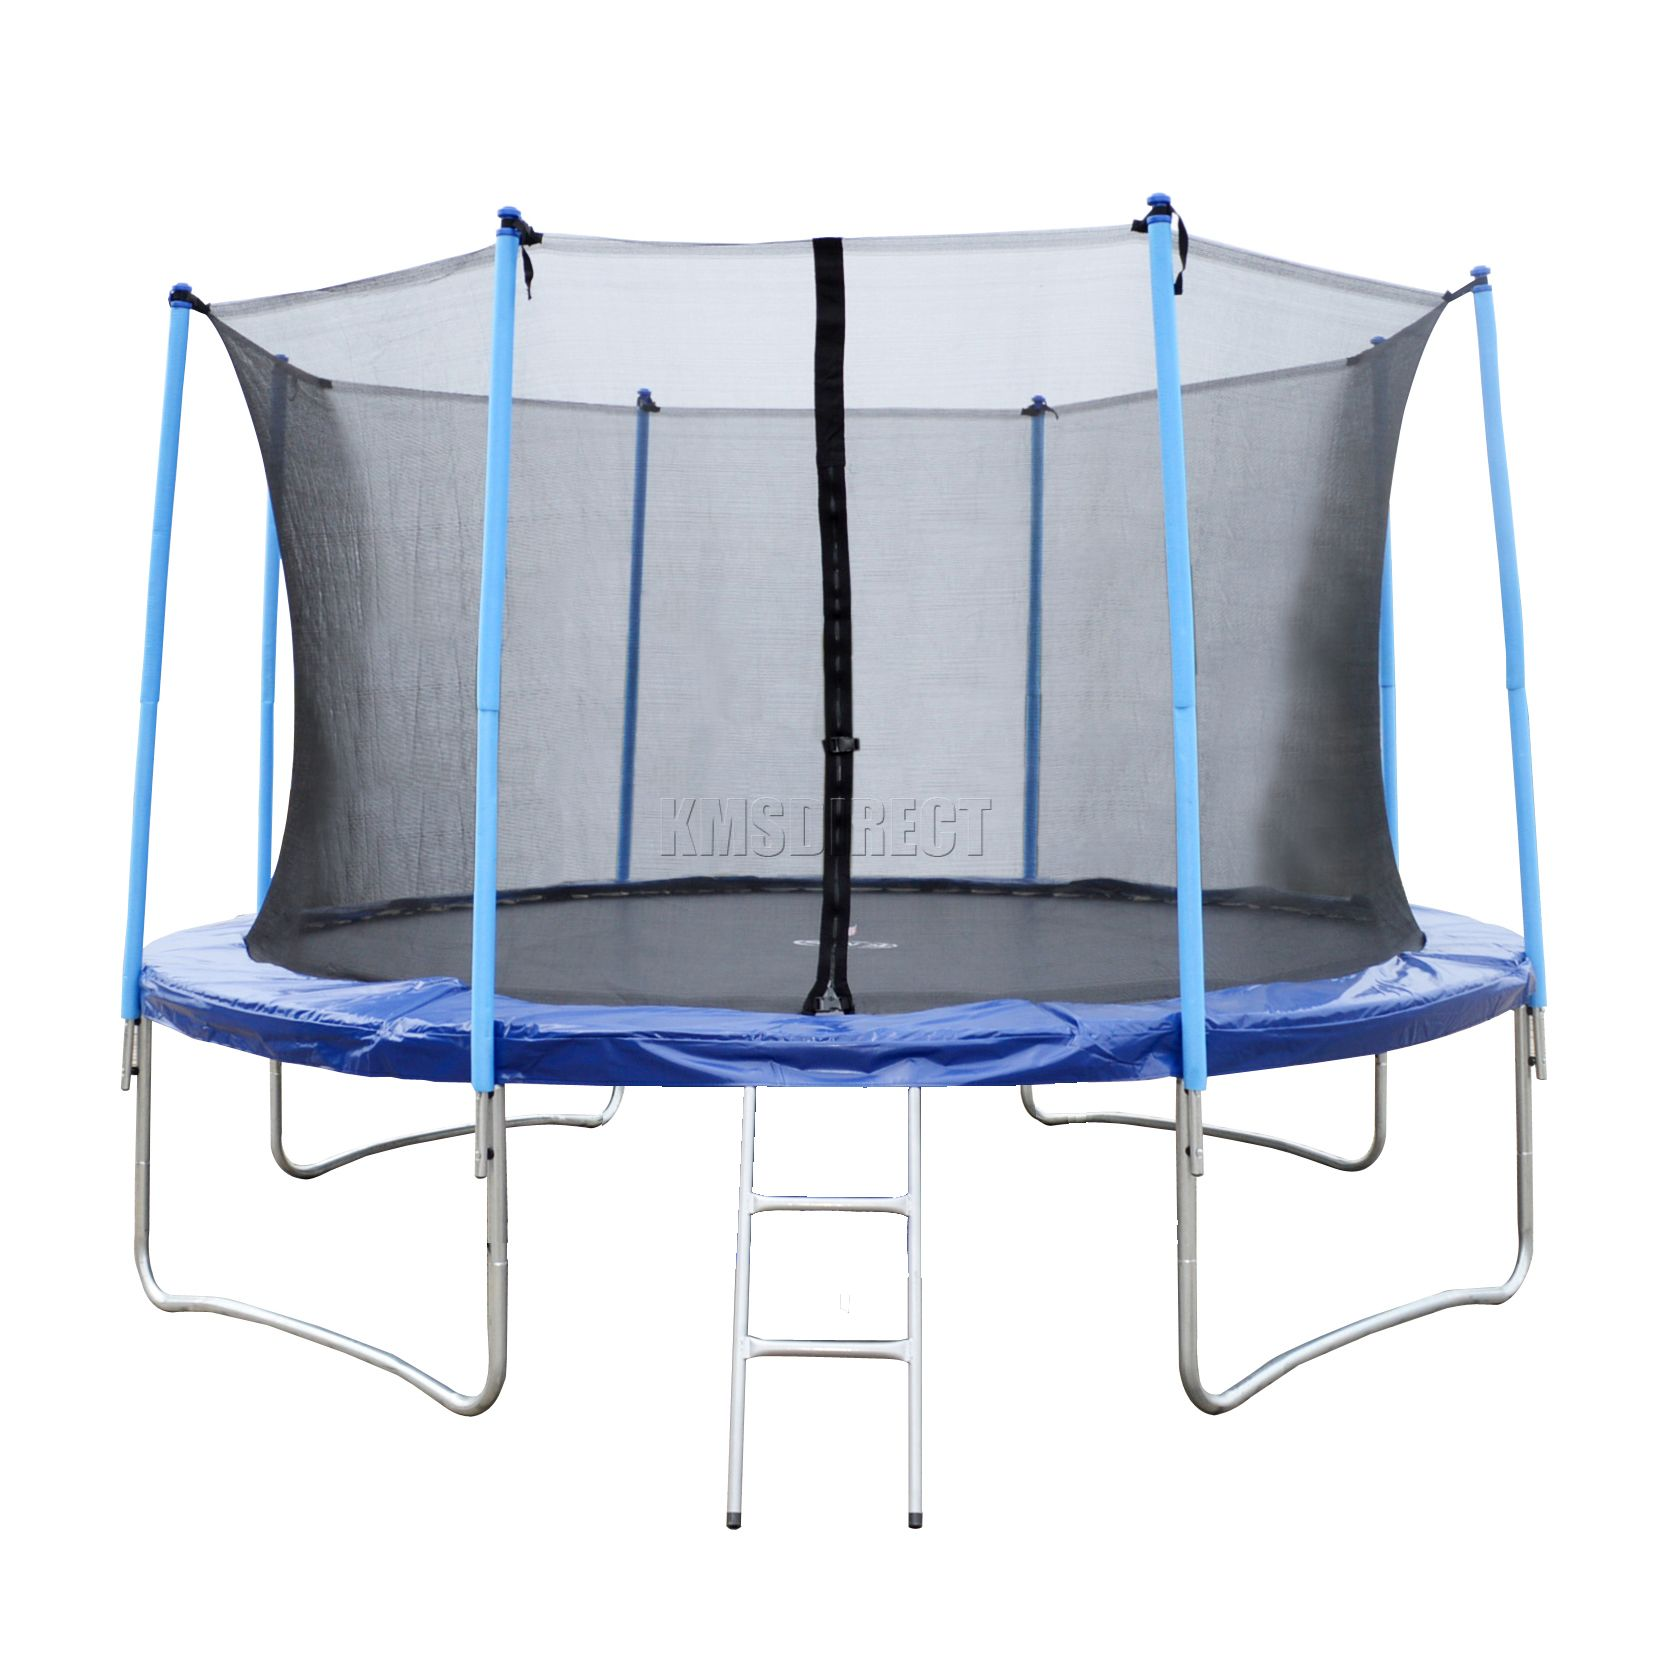 8ft 10ft 12ft 14 Replacement Trampoline Safety Spring: 8FT 10FT 12FT 14FT 16FT Trampoline With Safety Enclosure